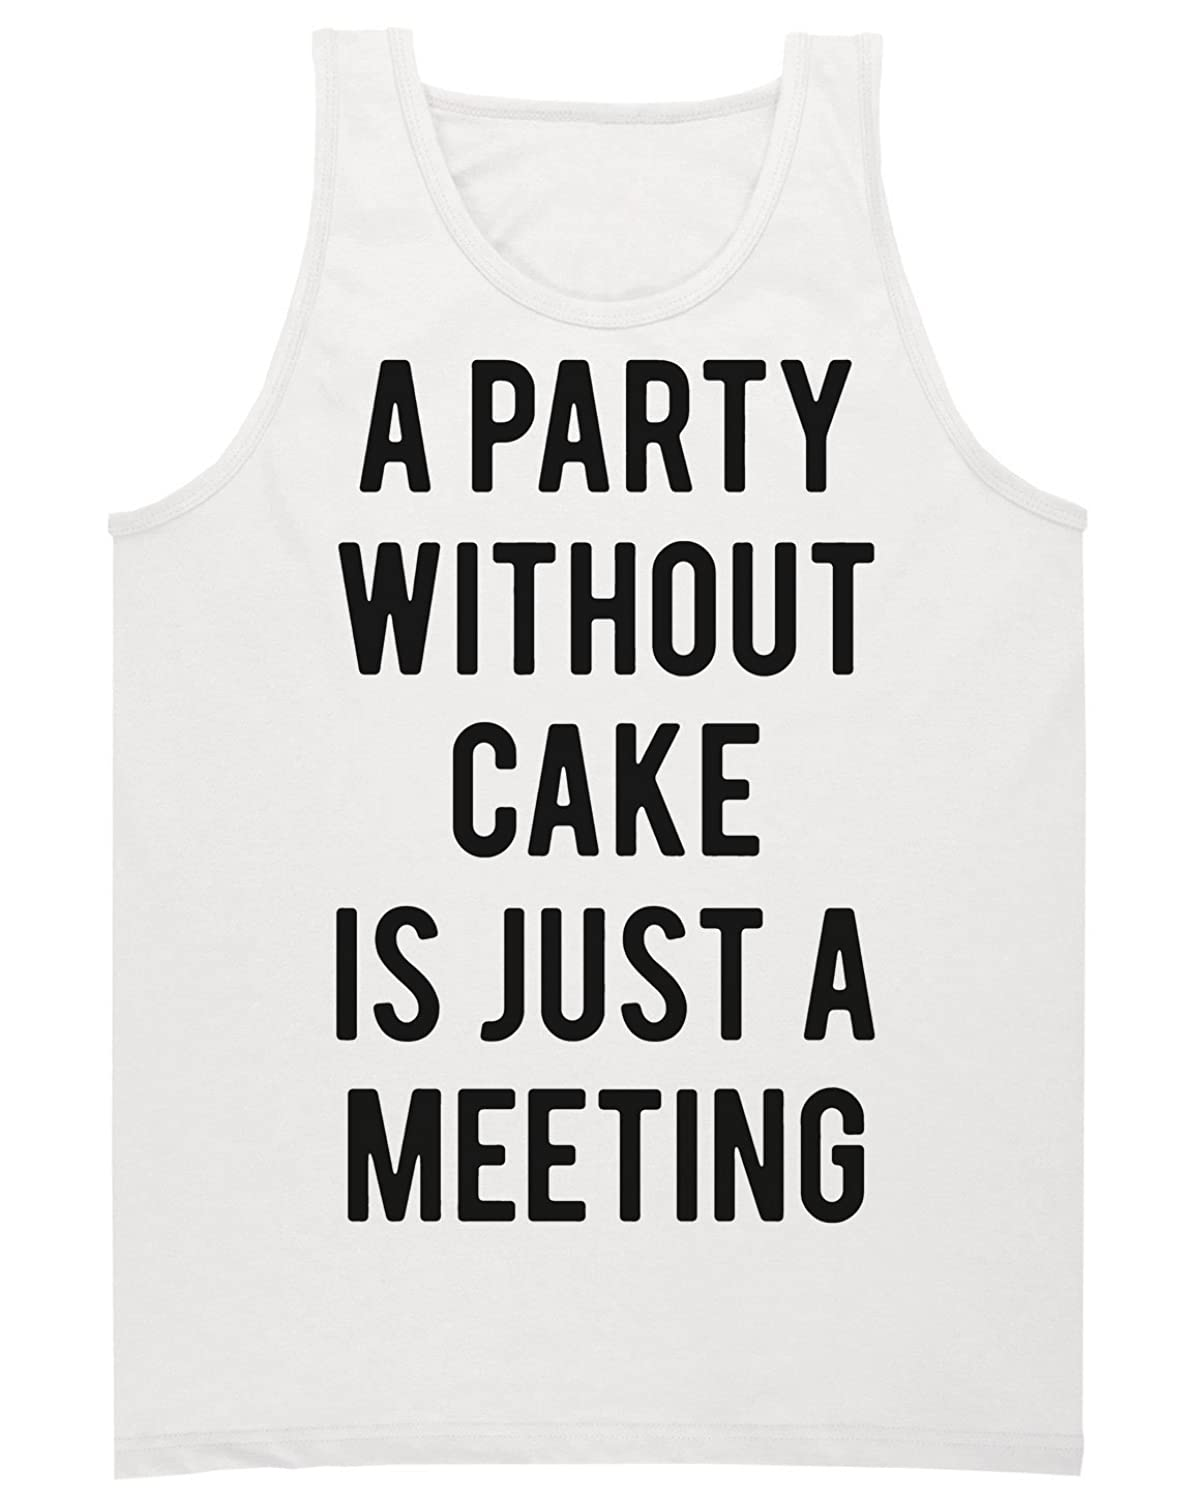 A Party Without Cake Is Just A Meeting Men's Tank Top Shirt Medium